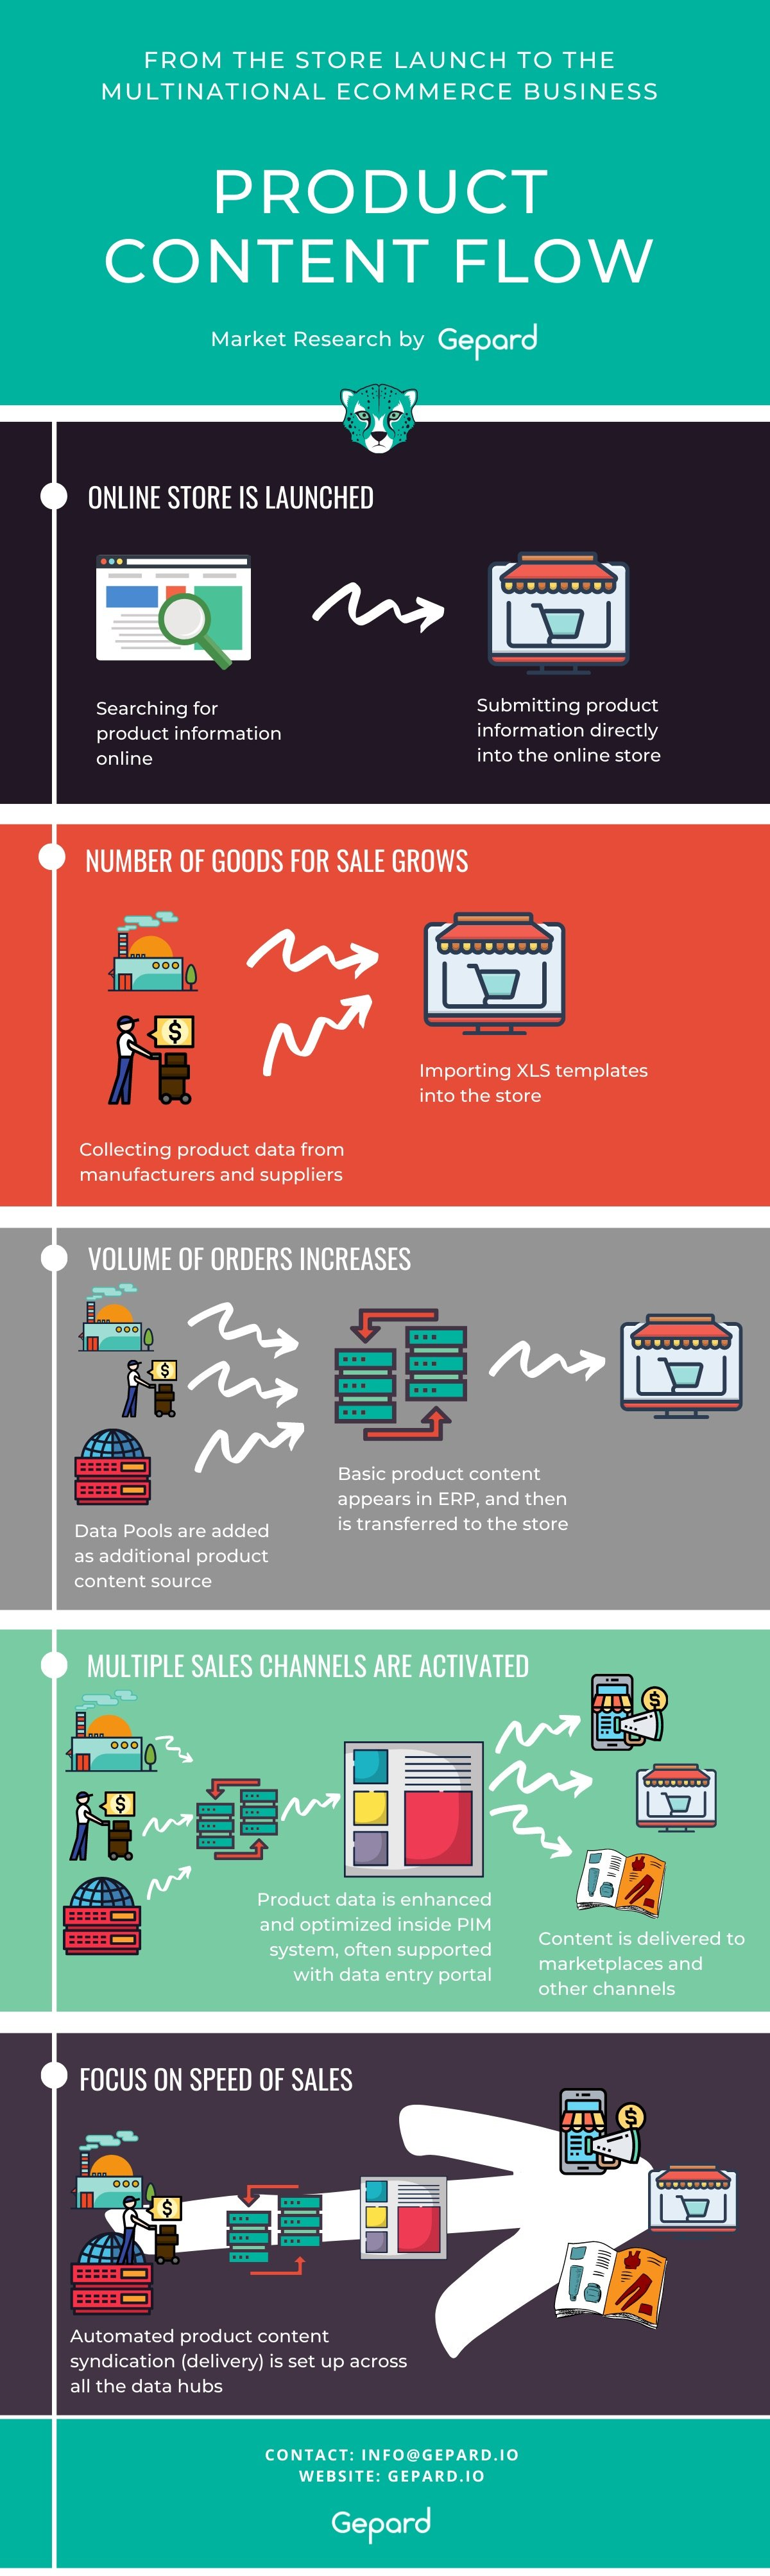 Product Content Flow Infographic